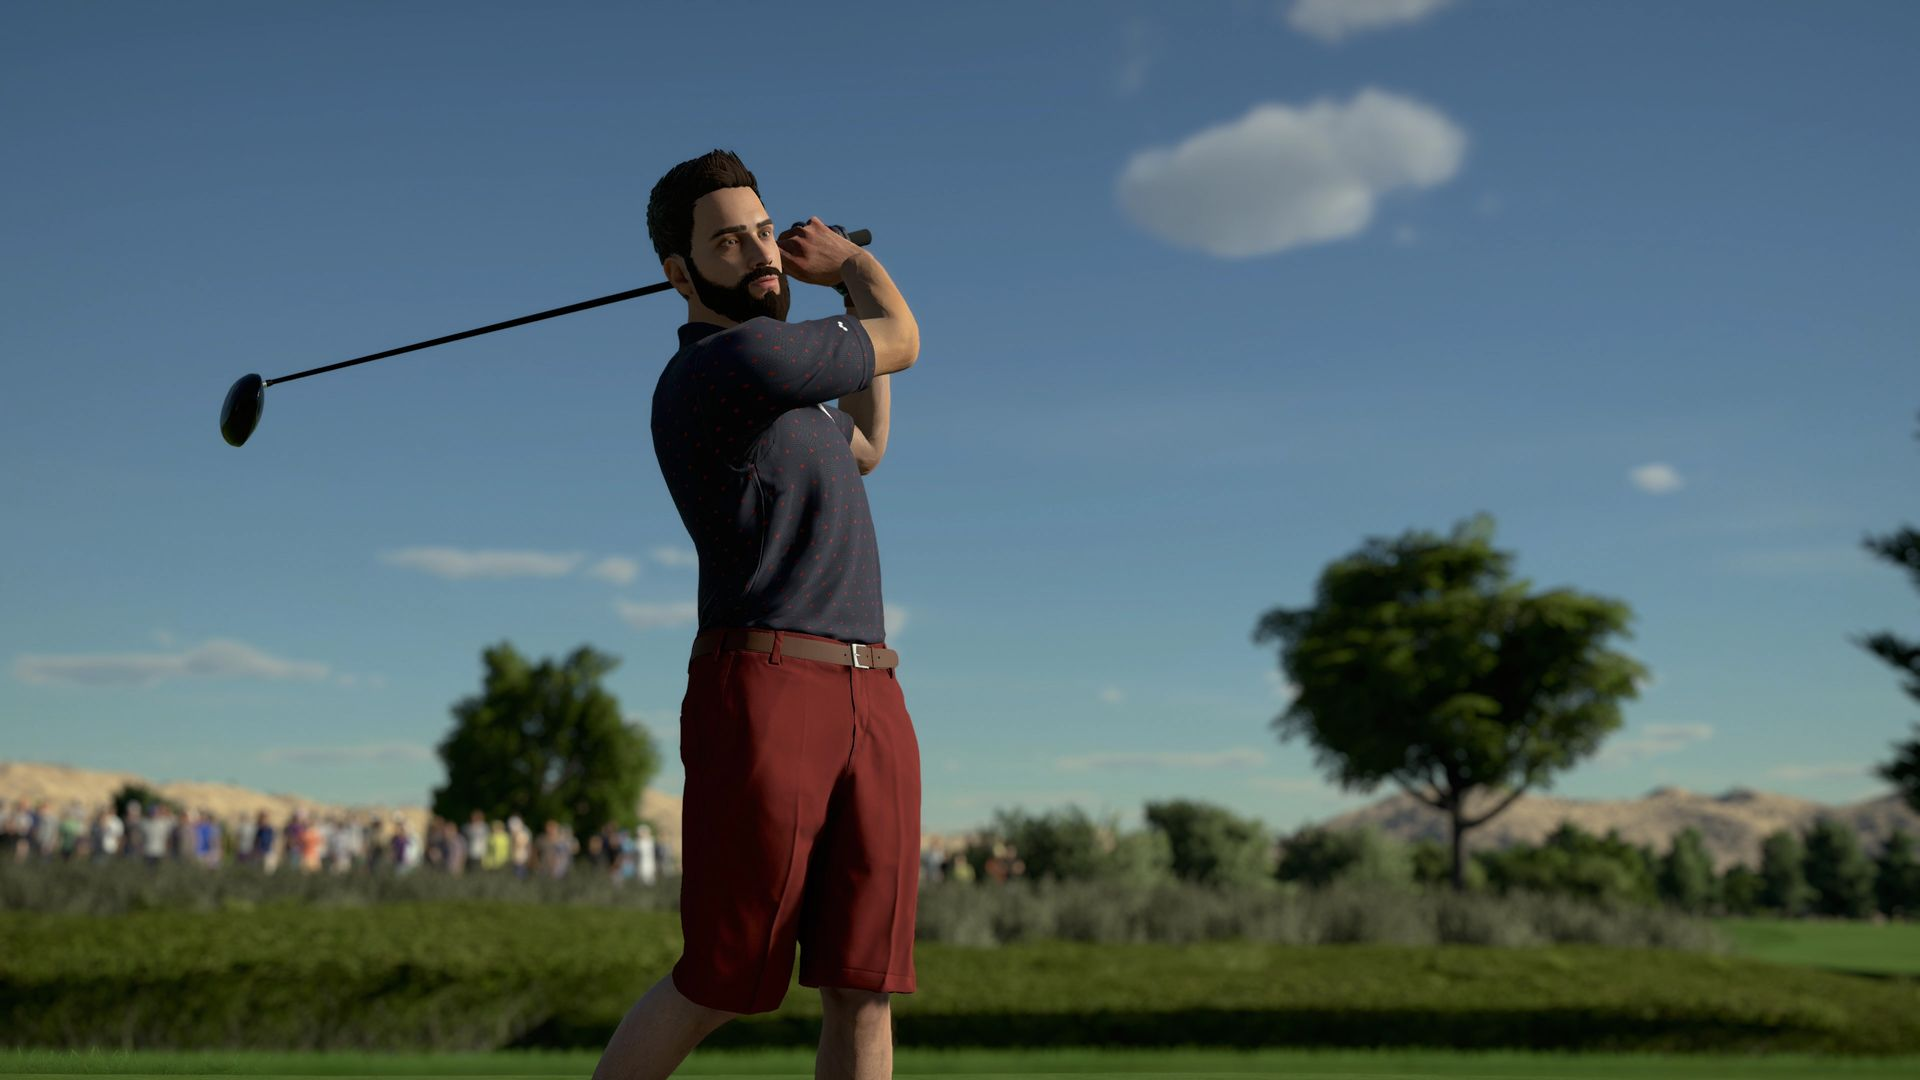 Ready For Your Club Drop Moment? PGA TOUR 2K21 Arrives August 21